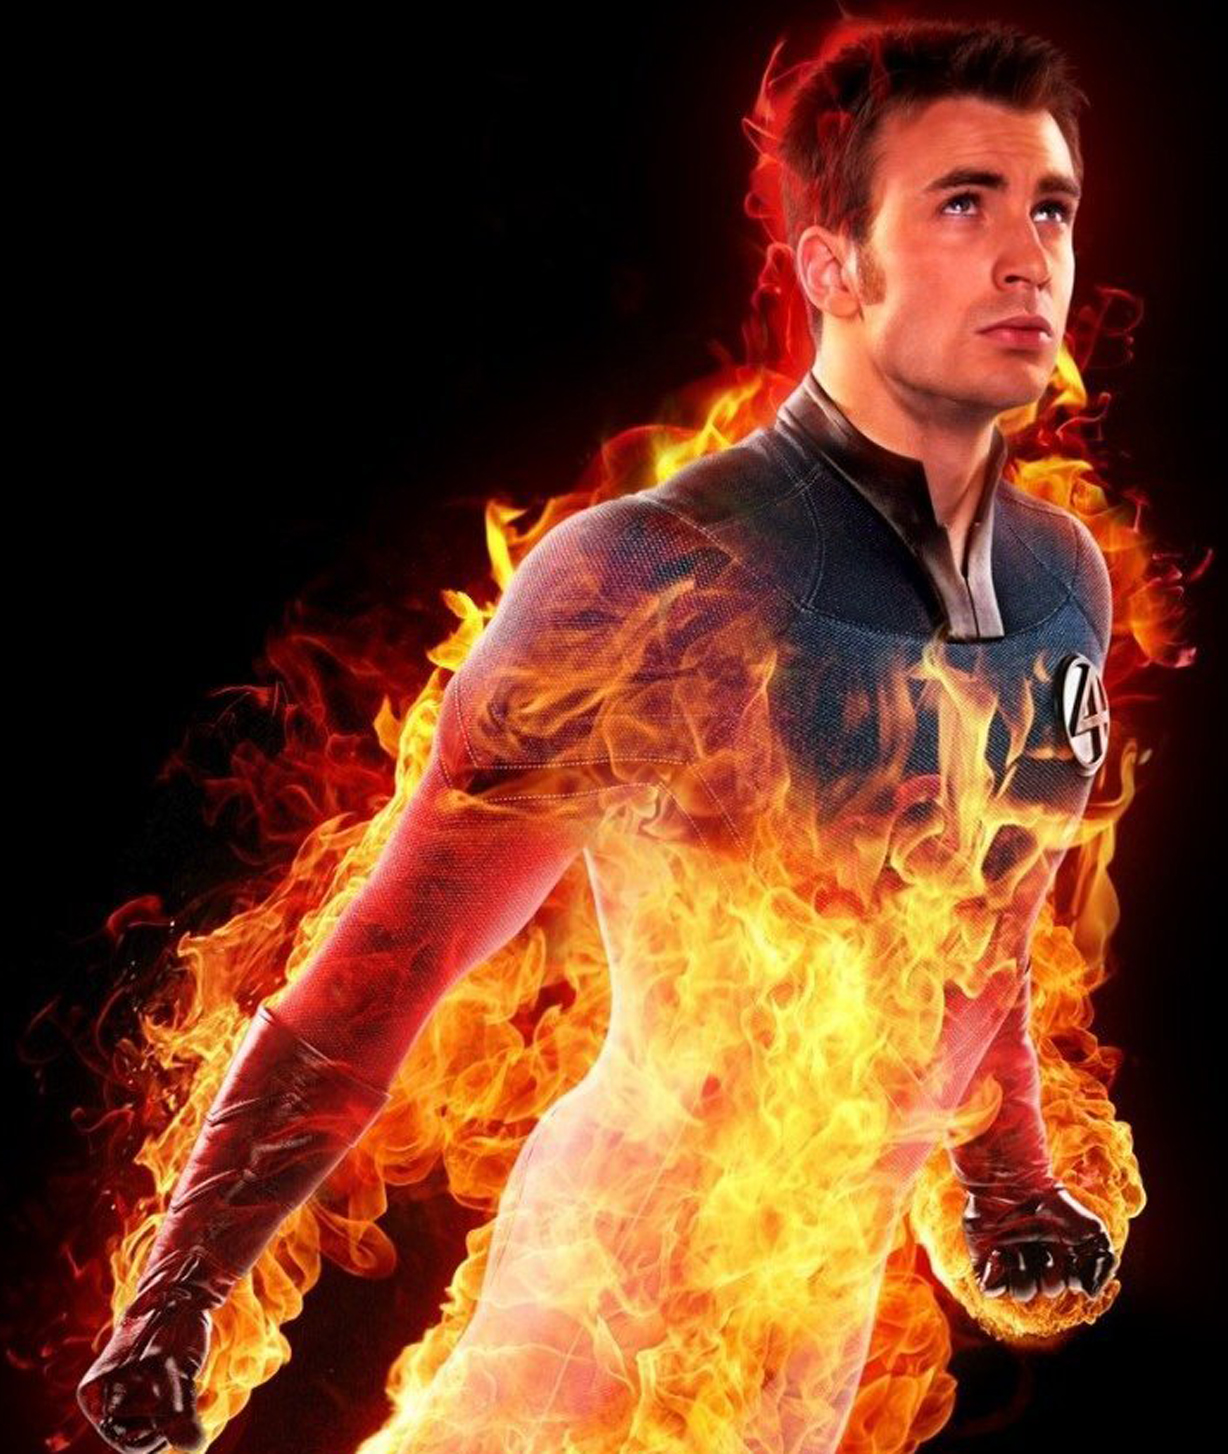 Human Torch (Story series) - Fantastic Four Movies Wiki